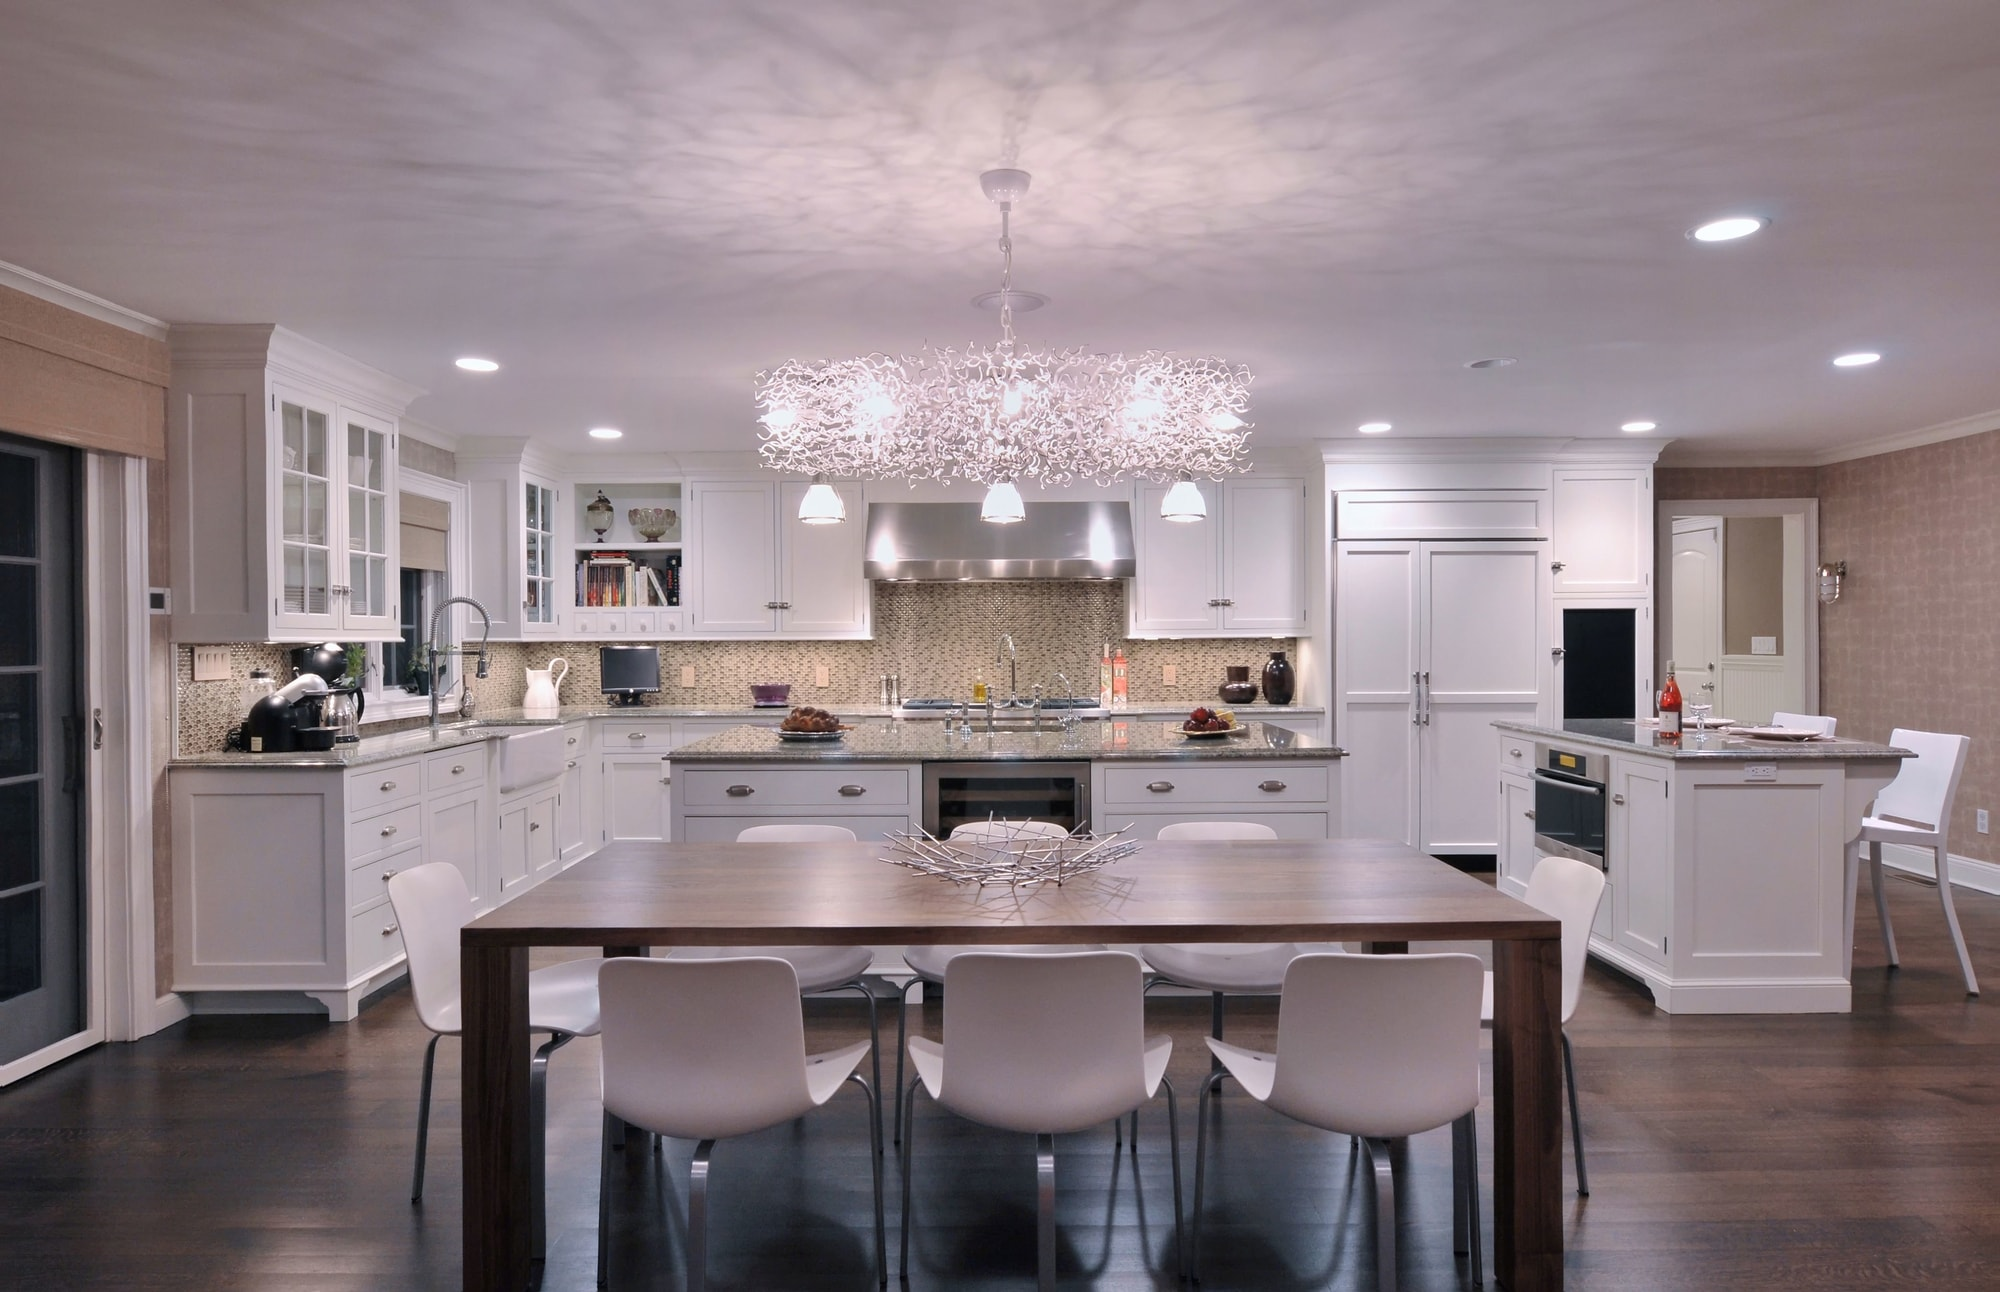 Transitional style kitchen with an open plan kitchen design